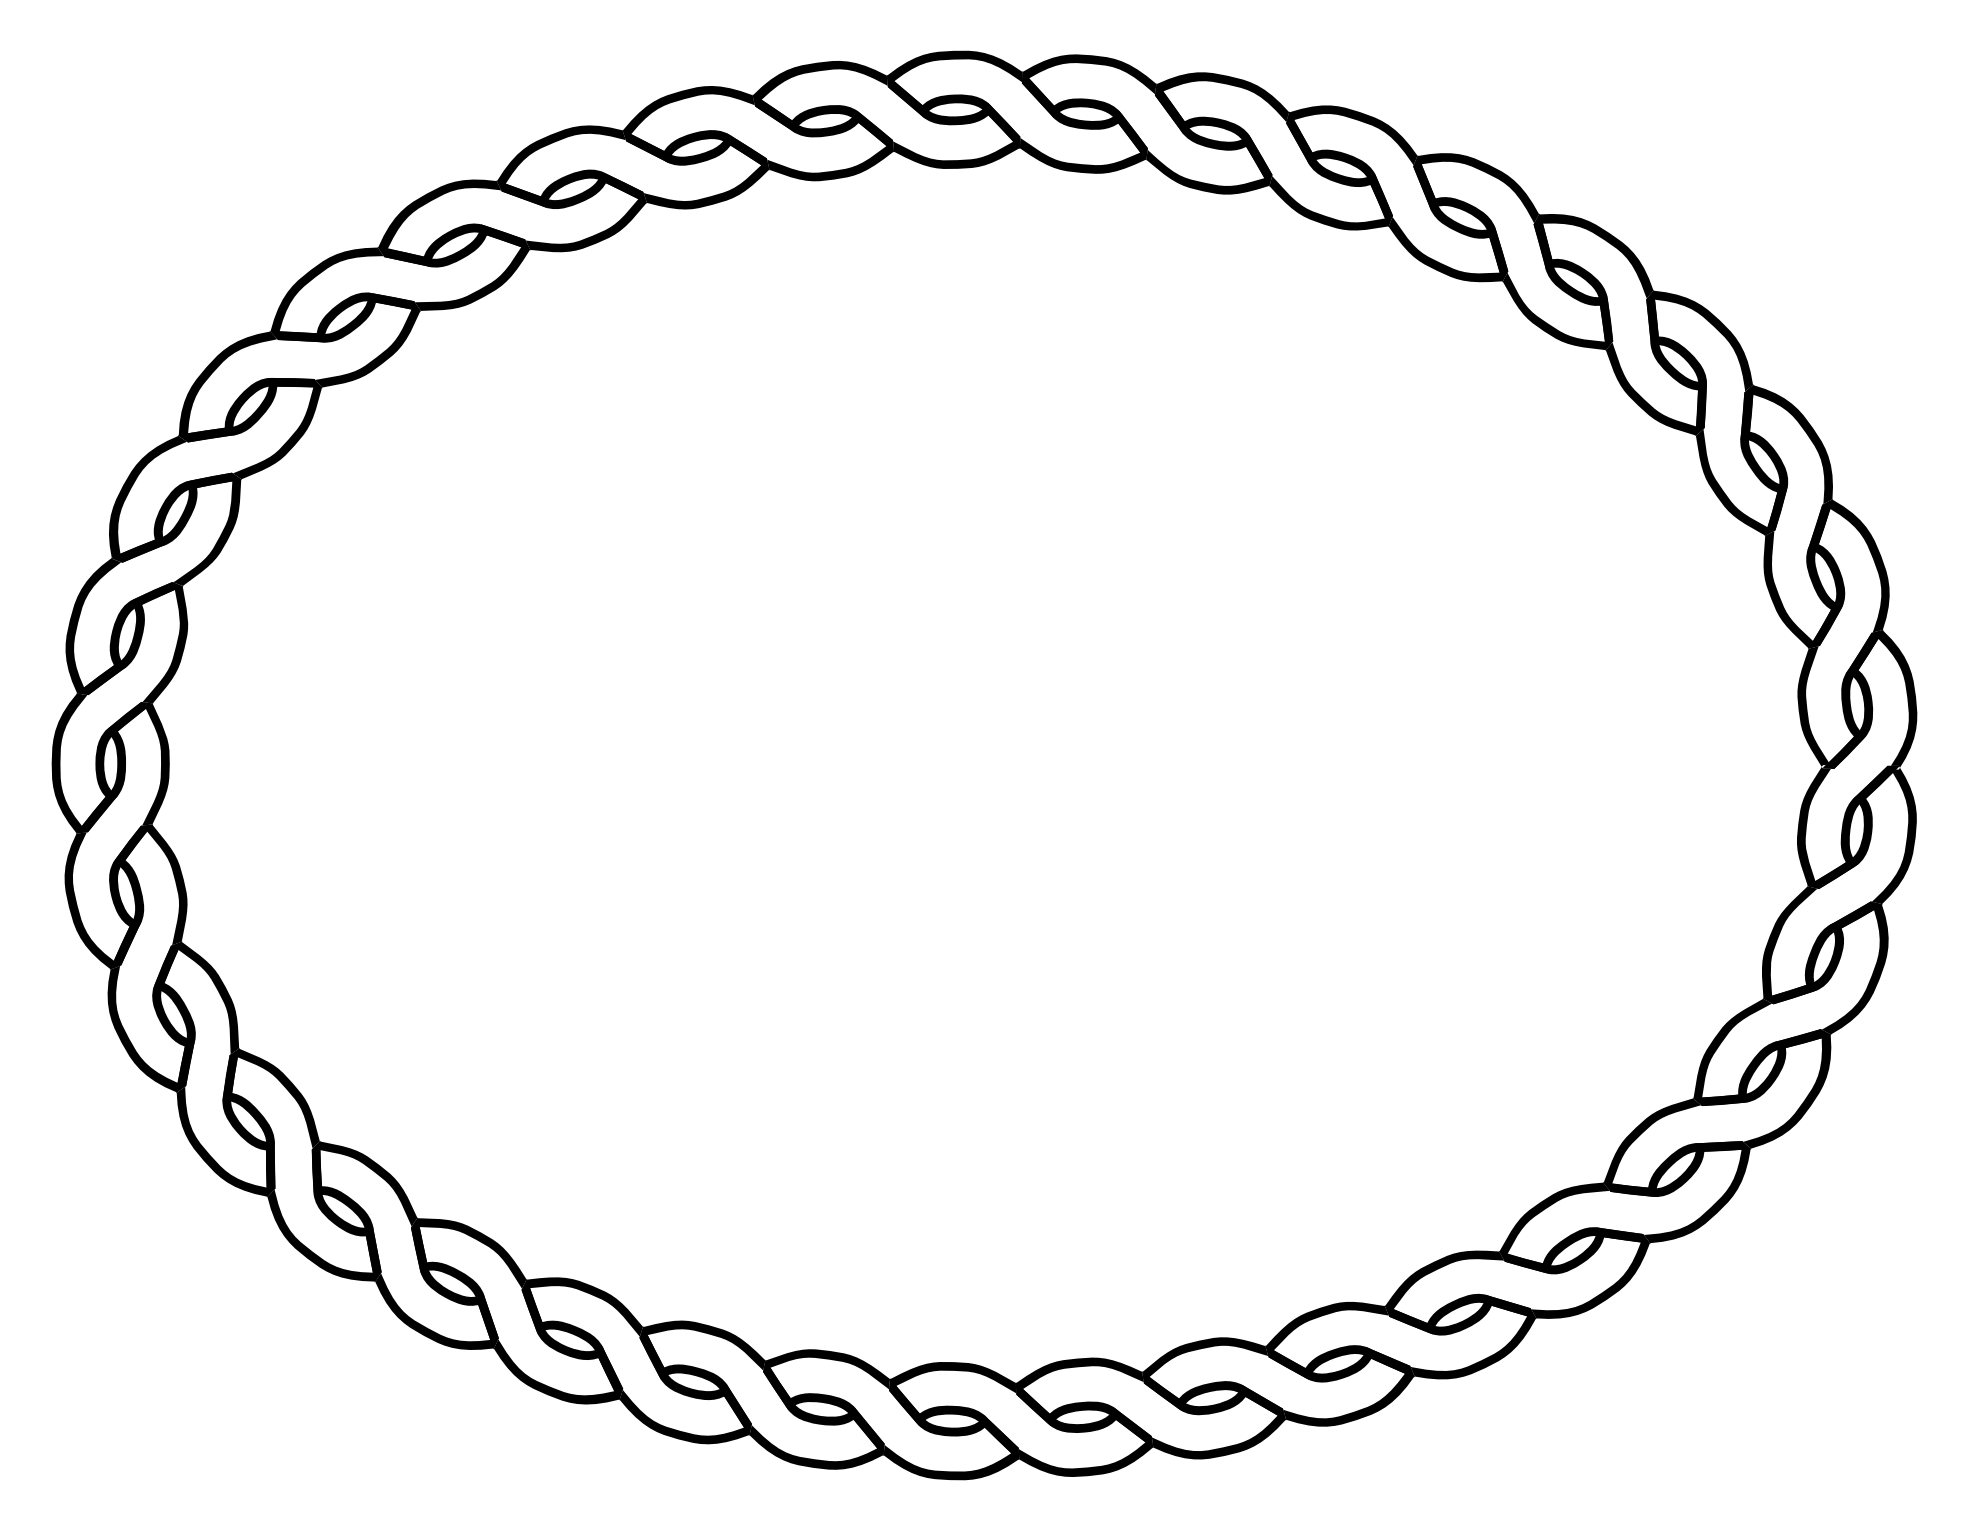 clip art free download Free clipart borders and lines. Oval frame black white